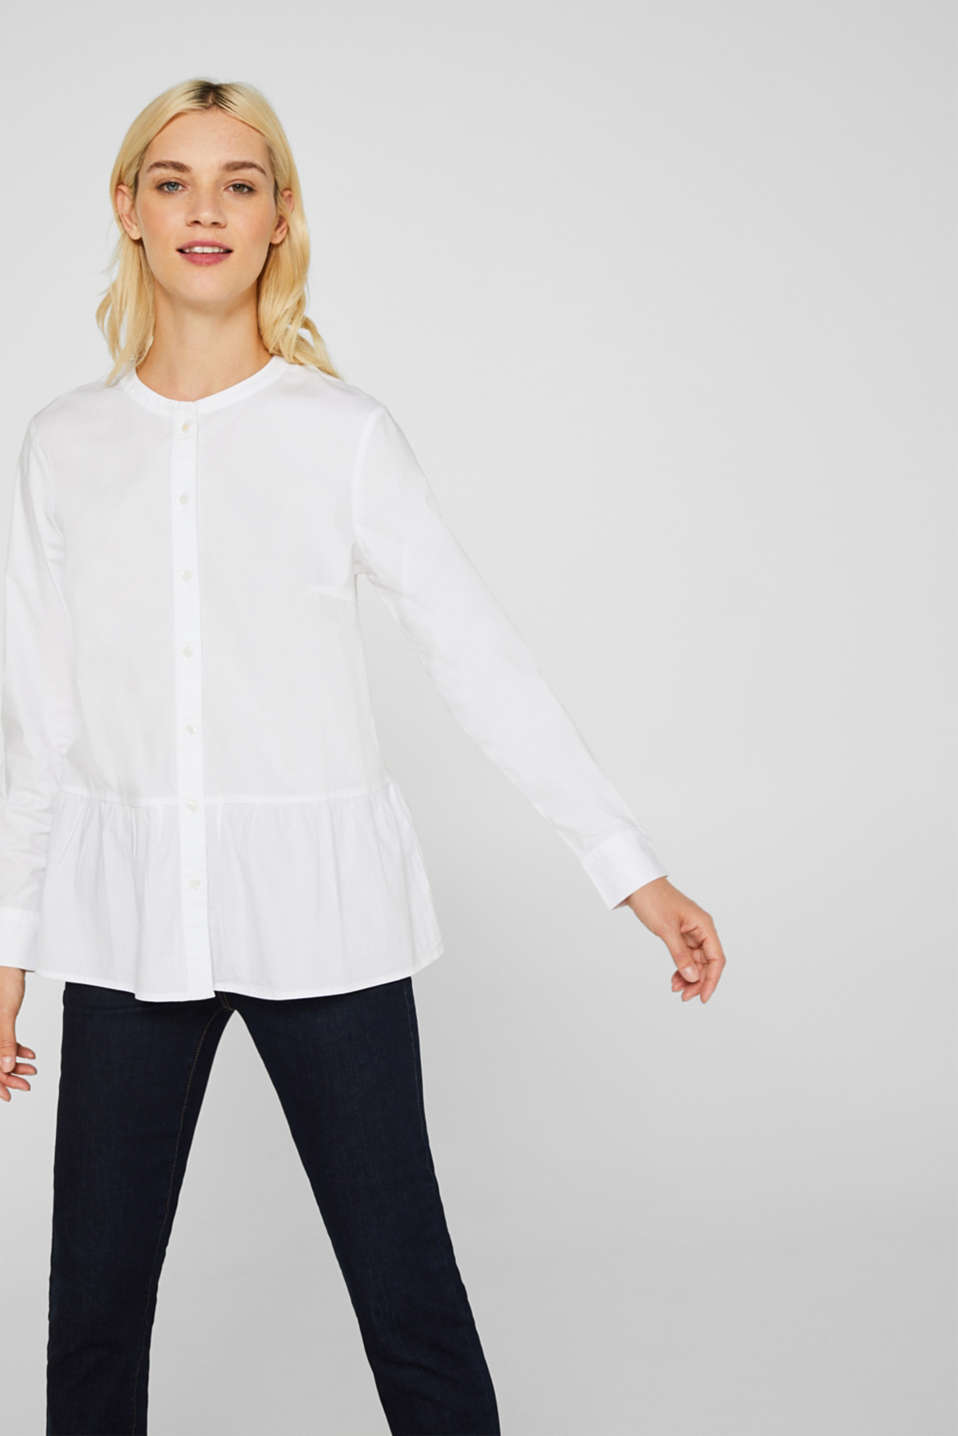 Esprit - Stretch blouse with a flounce hem